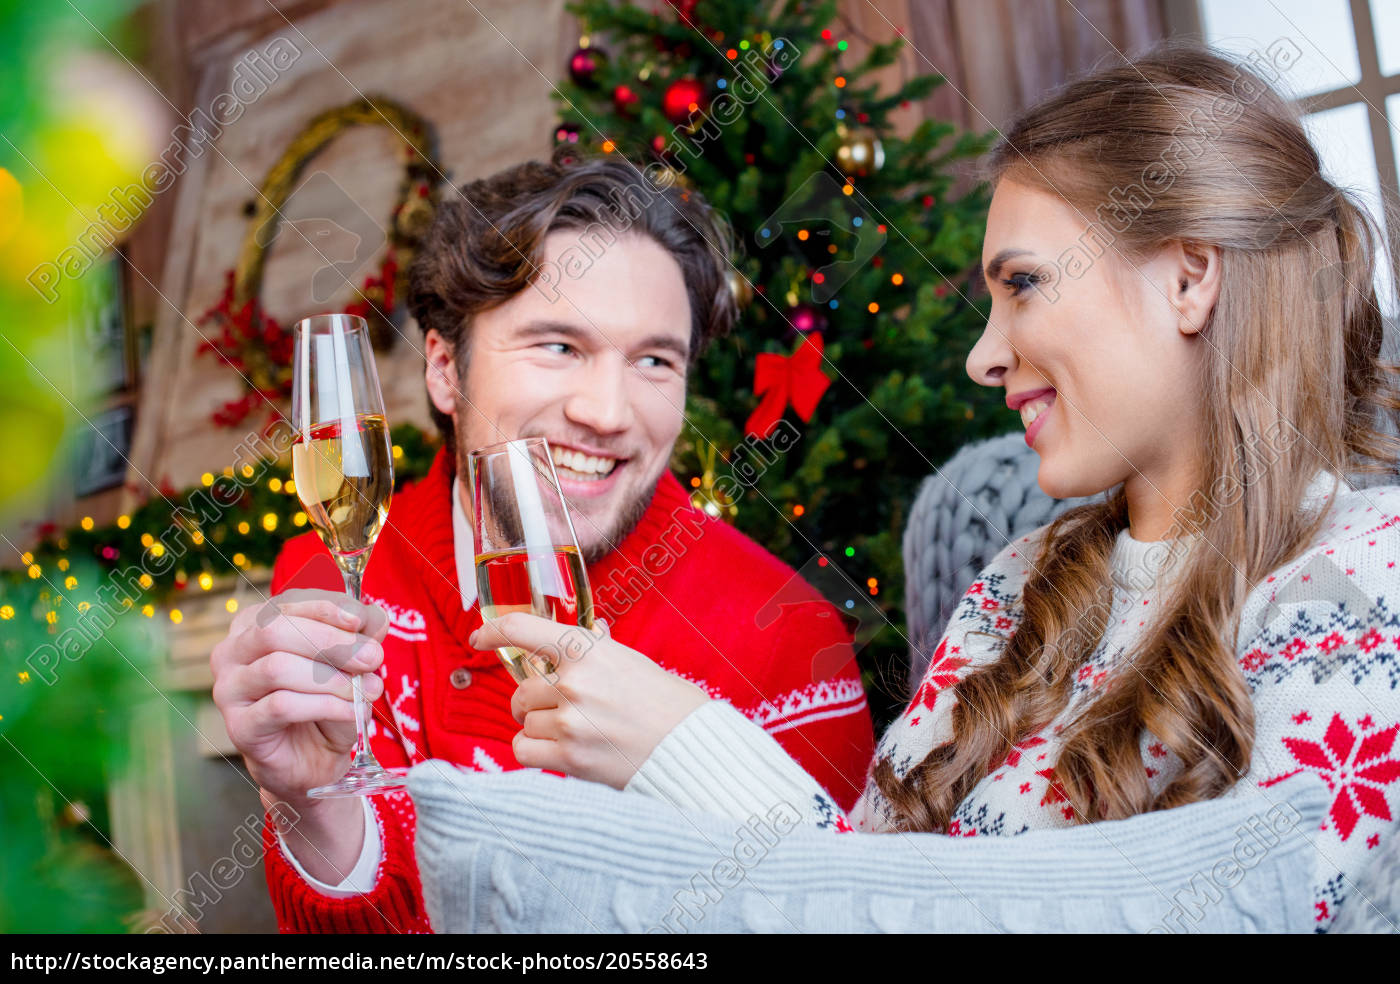 couple, toasting, with, champagne, glasses - 20558643